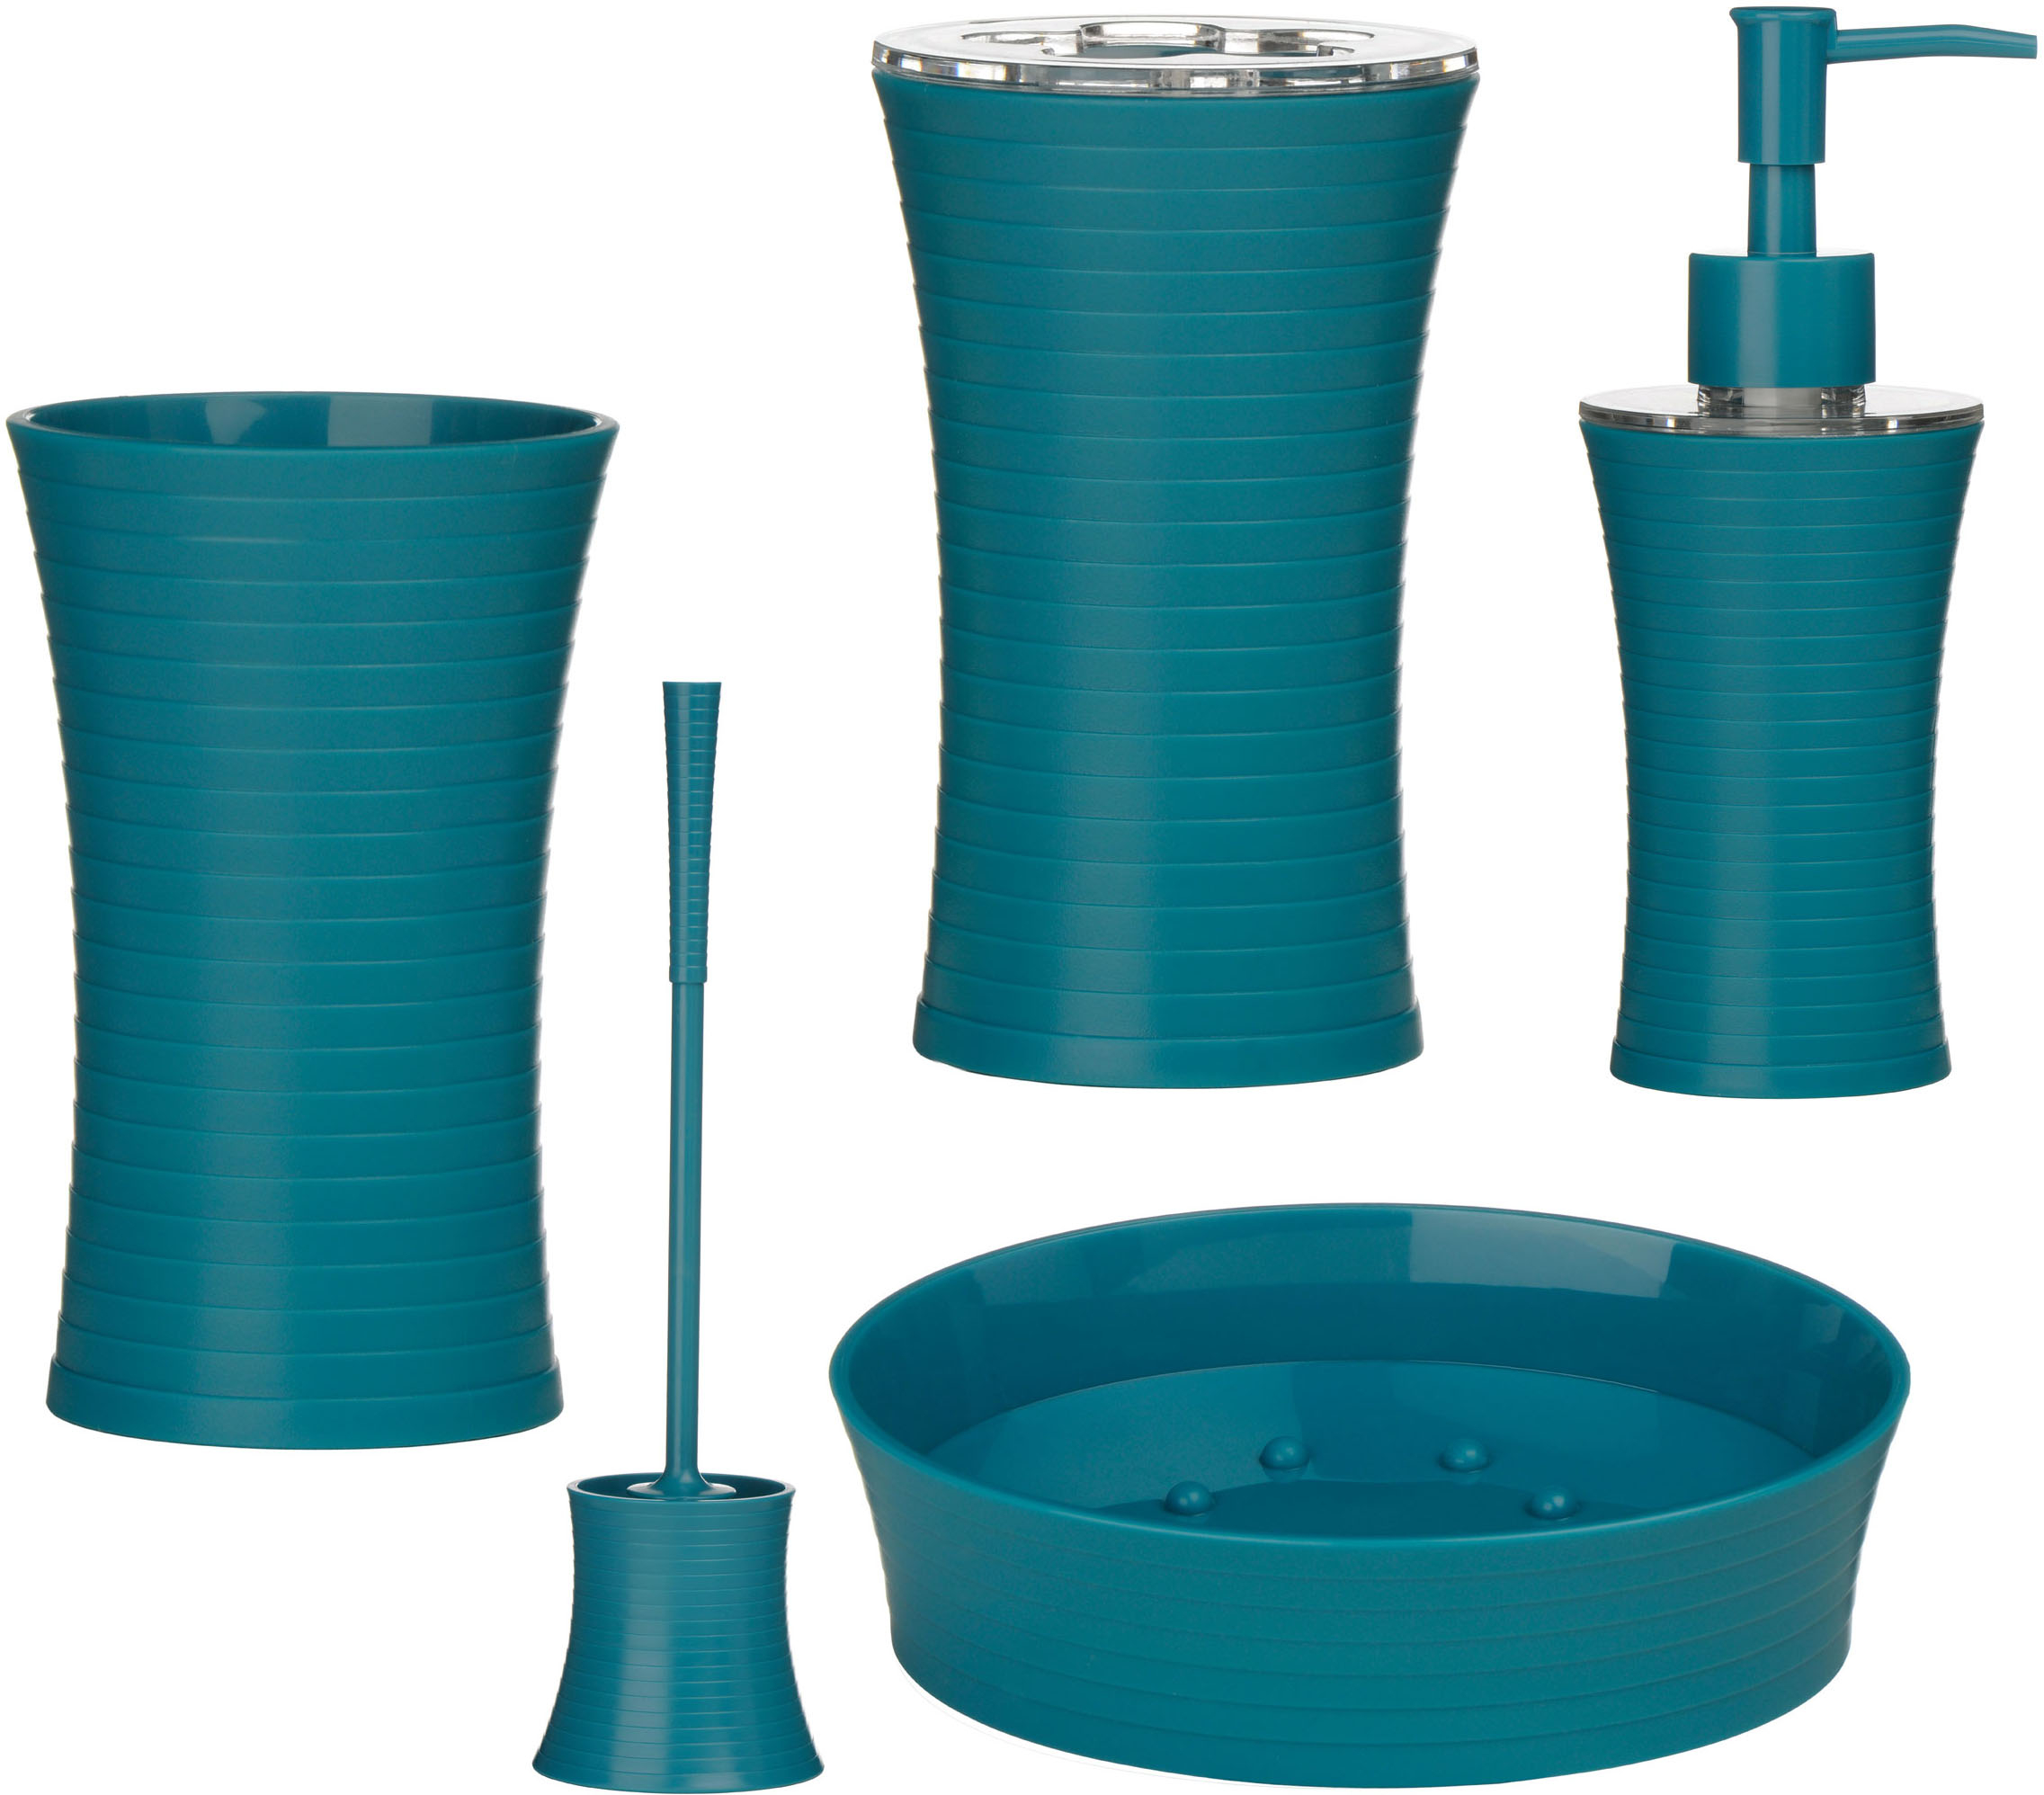 Modern Turquoise Bathroom Accessories: Photos And Products Ideas throughout Fresh Light Blue Bathroom Accessories